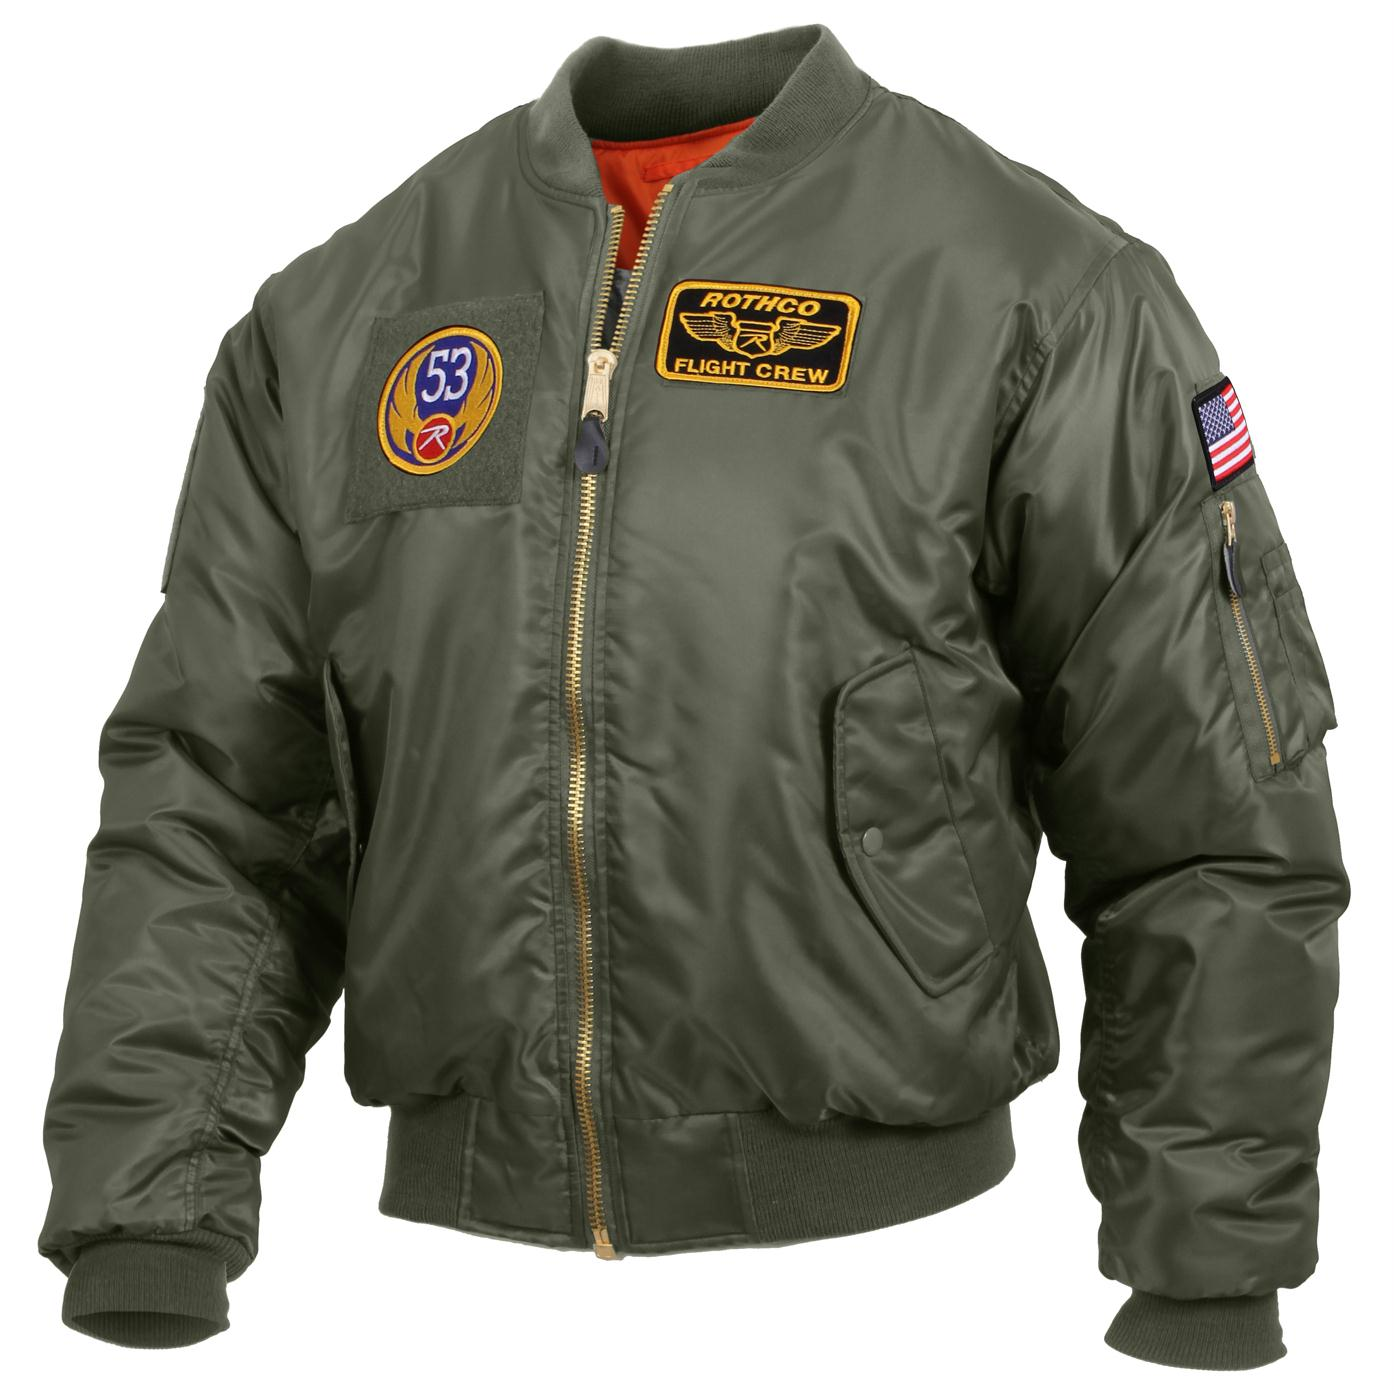 Rothco MA-1 Flight Jacket with Patches - Sage Green / XS